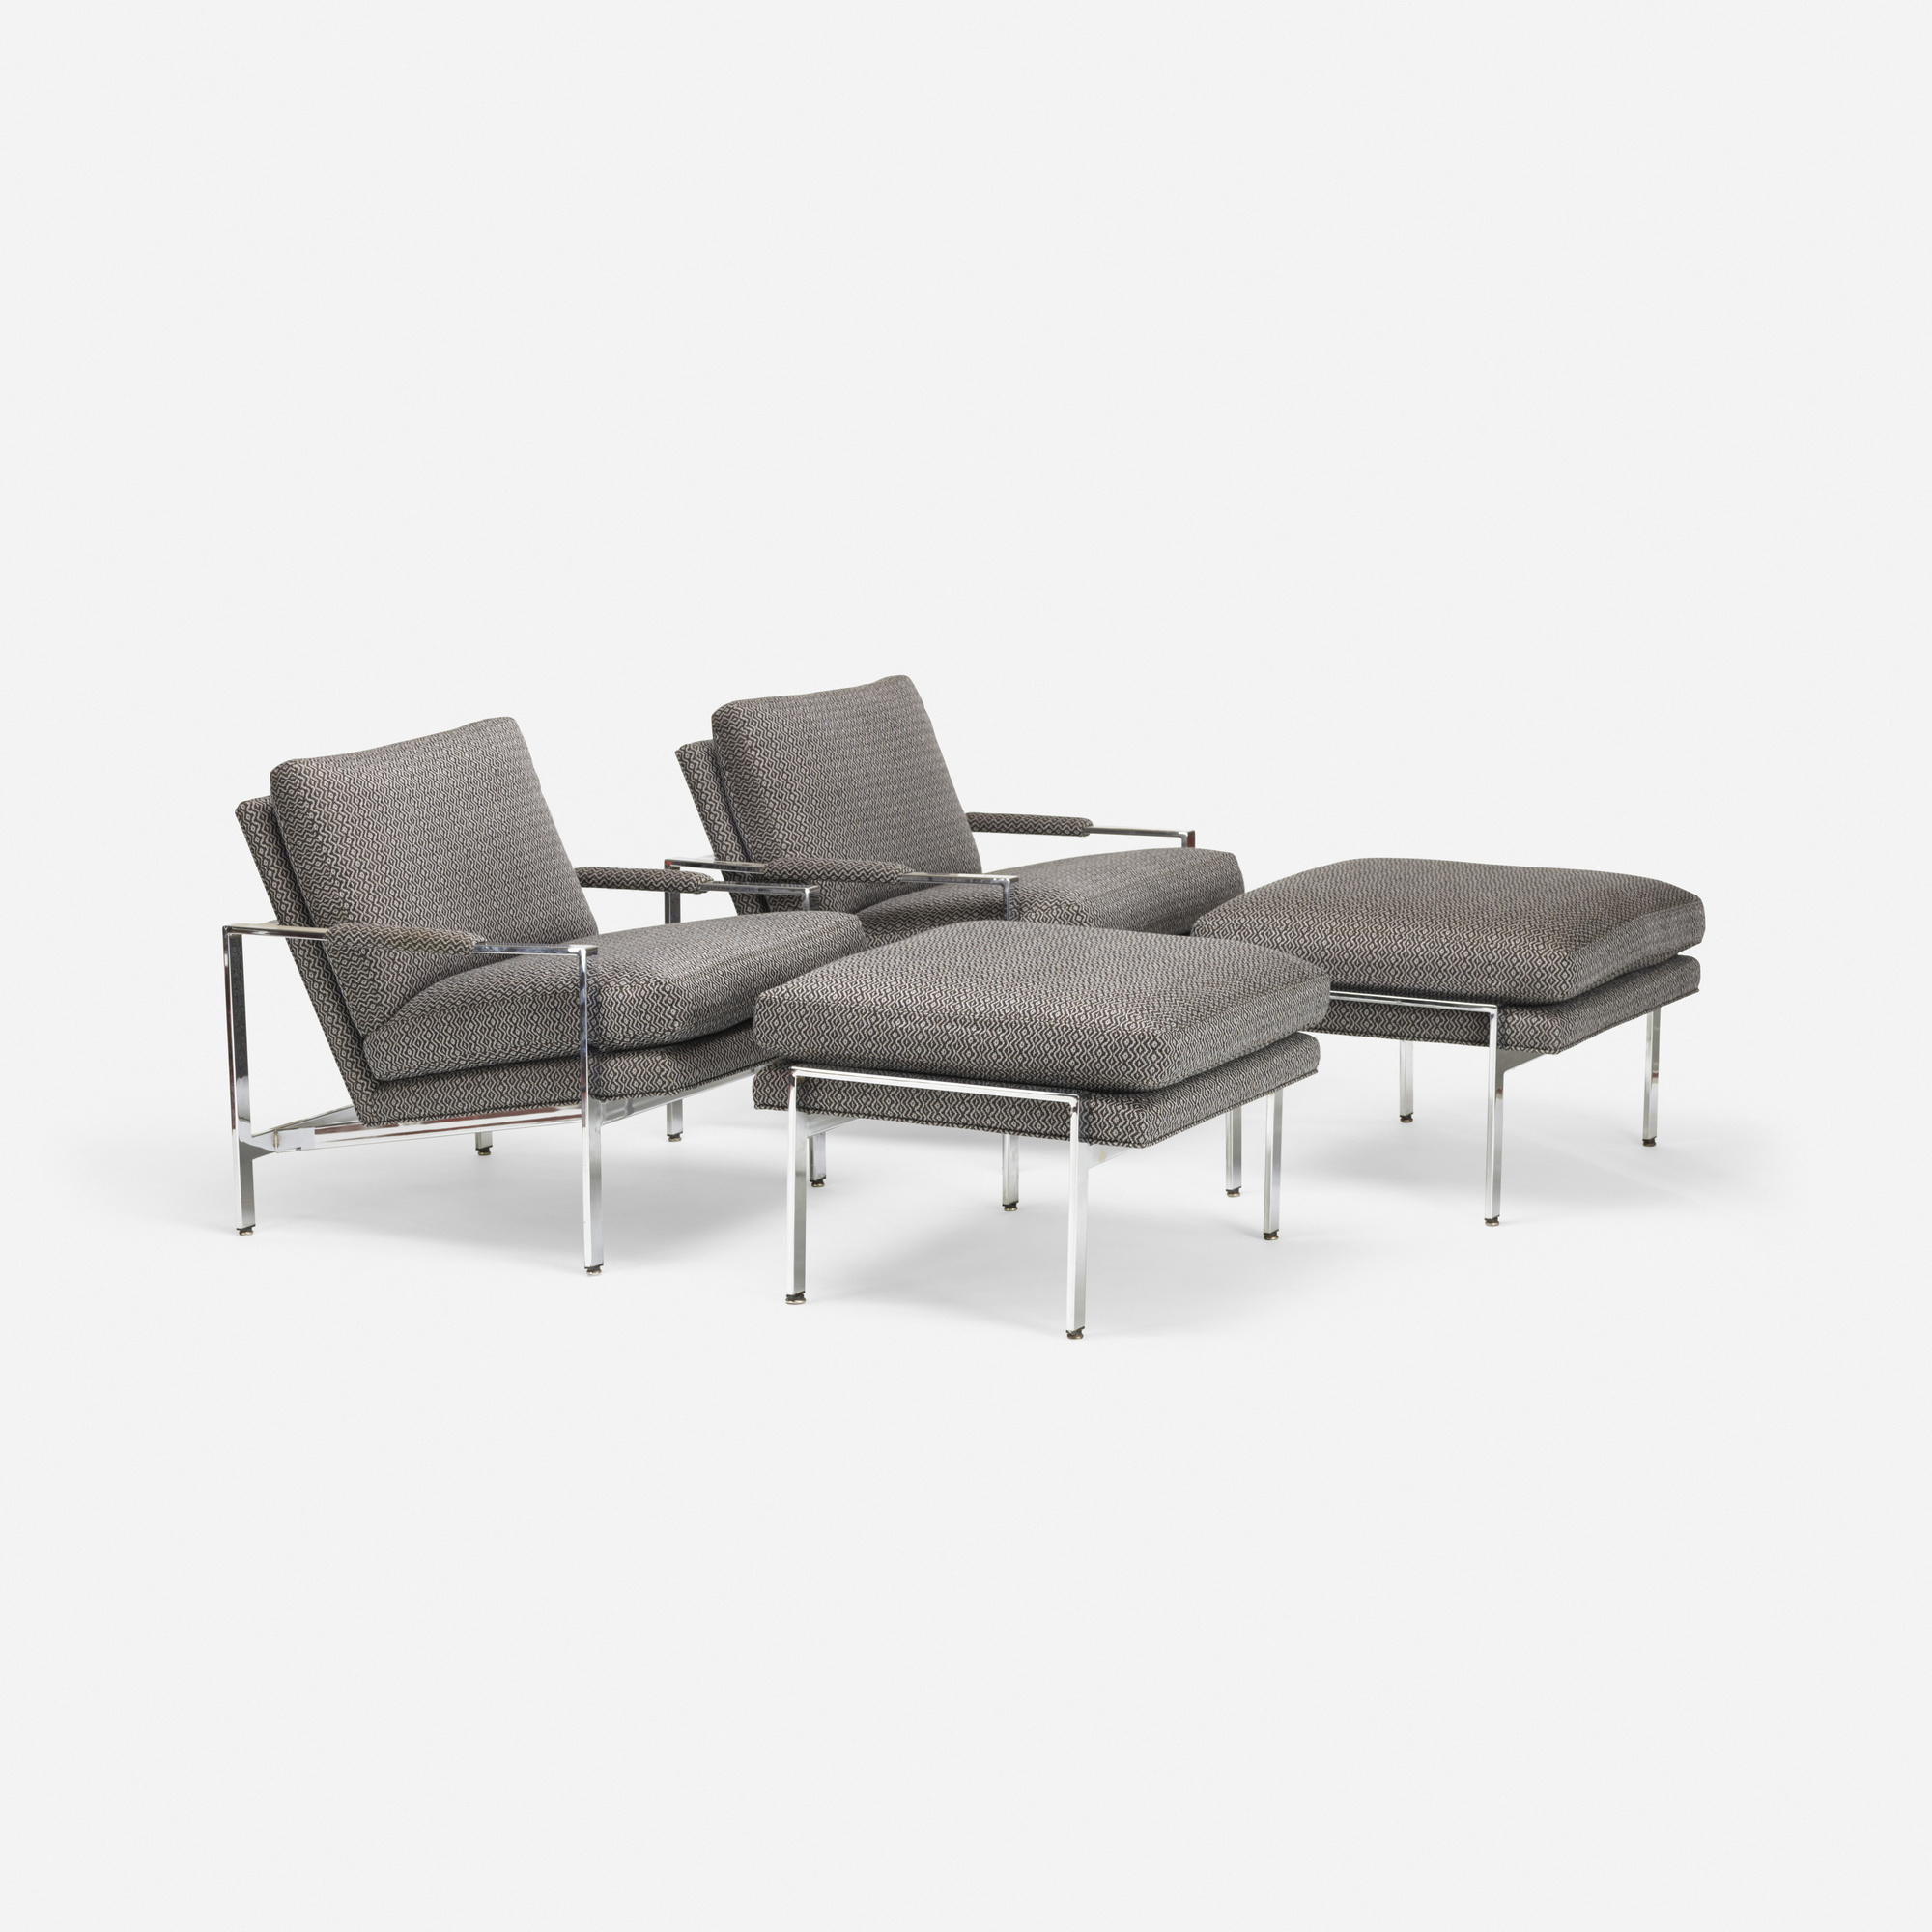 401: Milo Baughman / chairs with ottomans, pair (1 of 4)